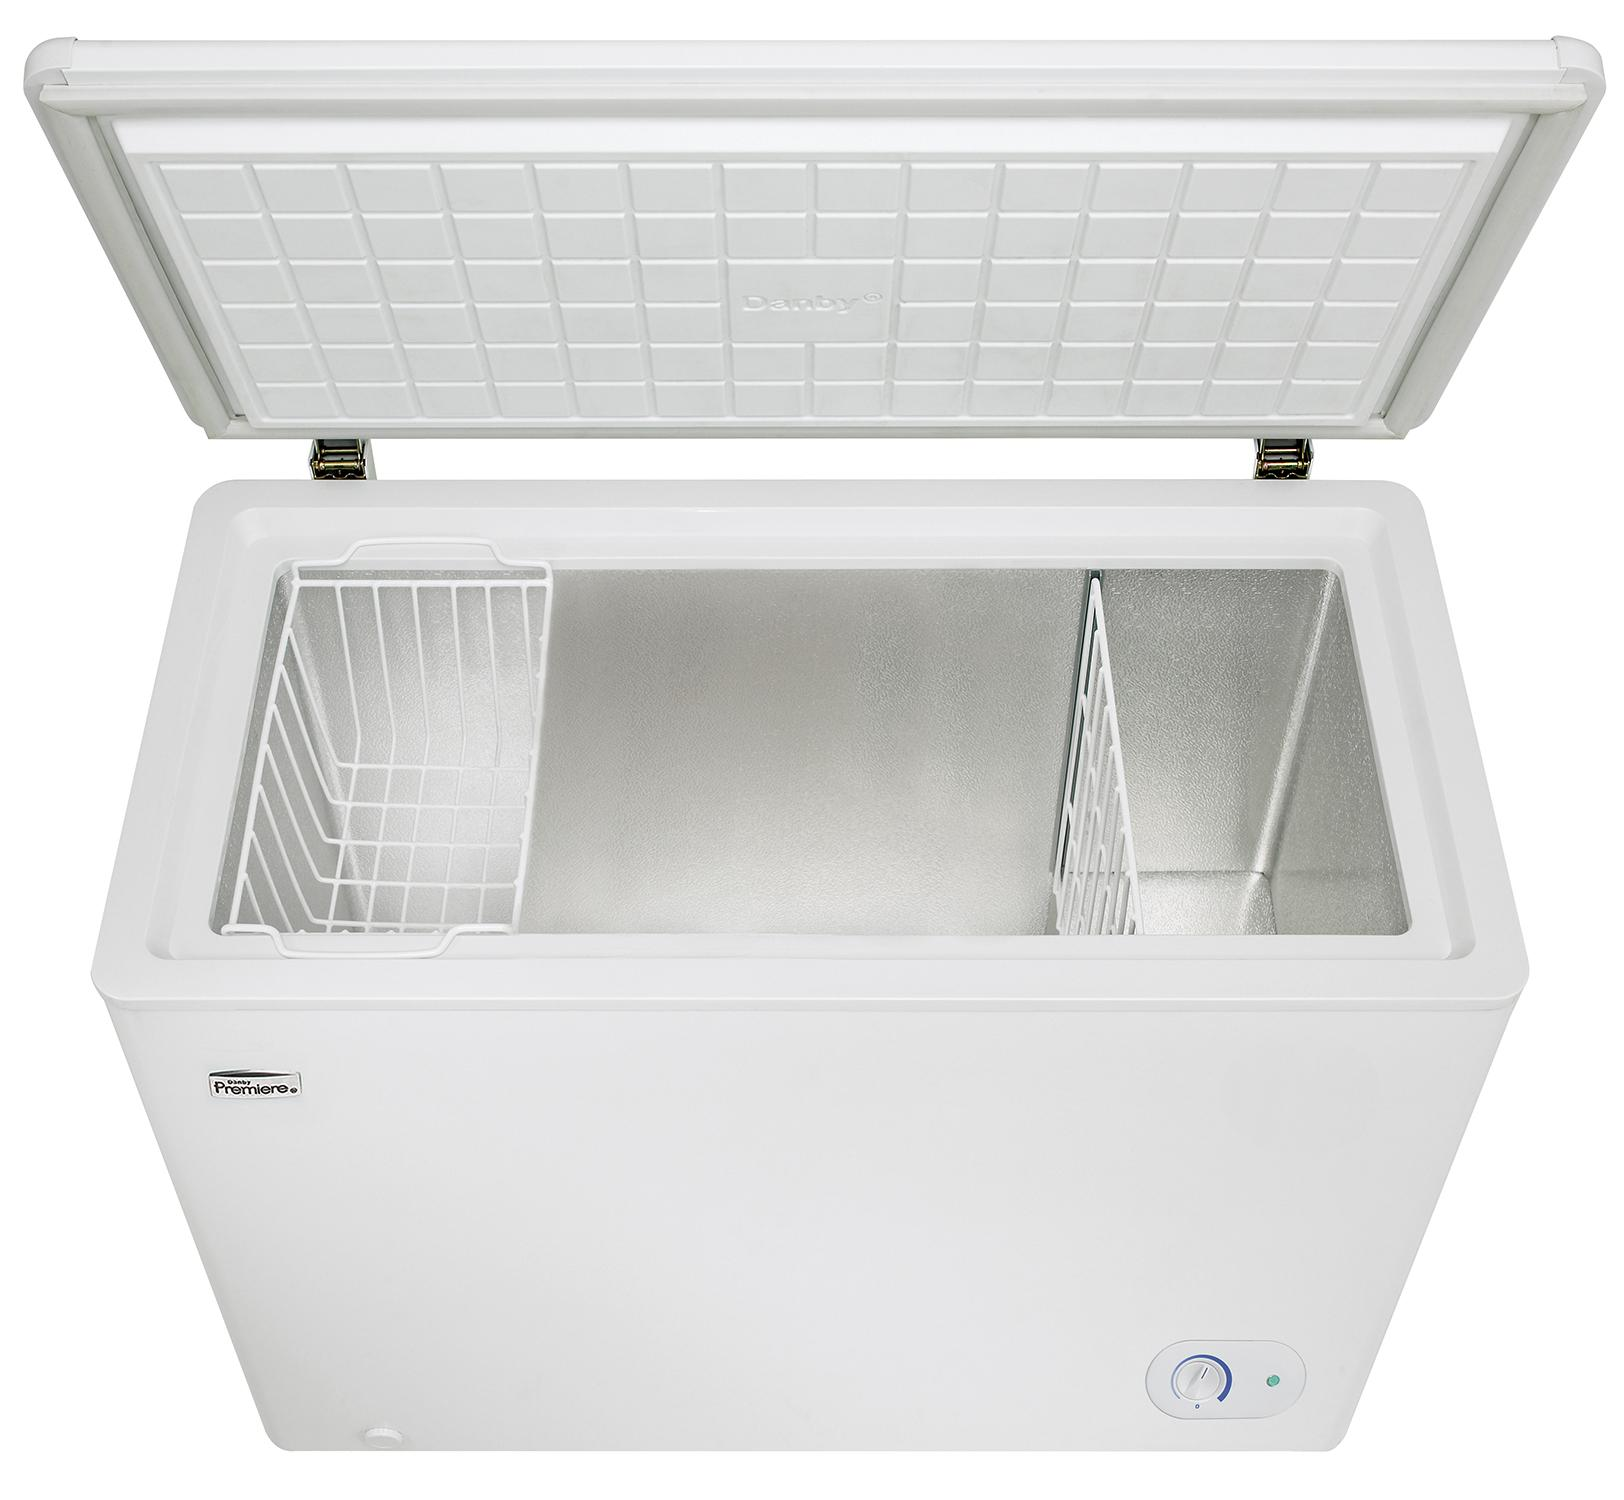 d4141dec 75f2 46cd ab53 fee7bbc9bdc5._CB309475107_ amazon com danby dcf072a2wdb1 chest freezer, 7 2 cubic feet  at virtualis.co